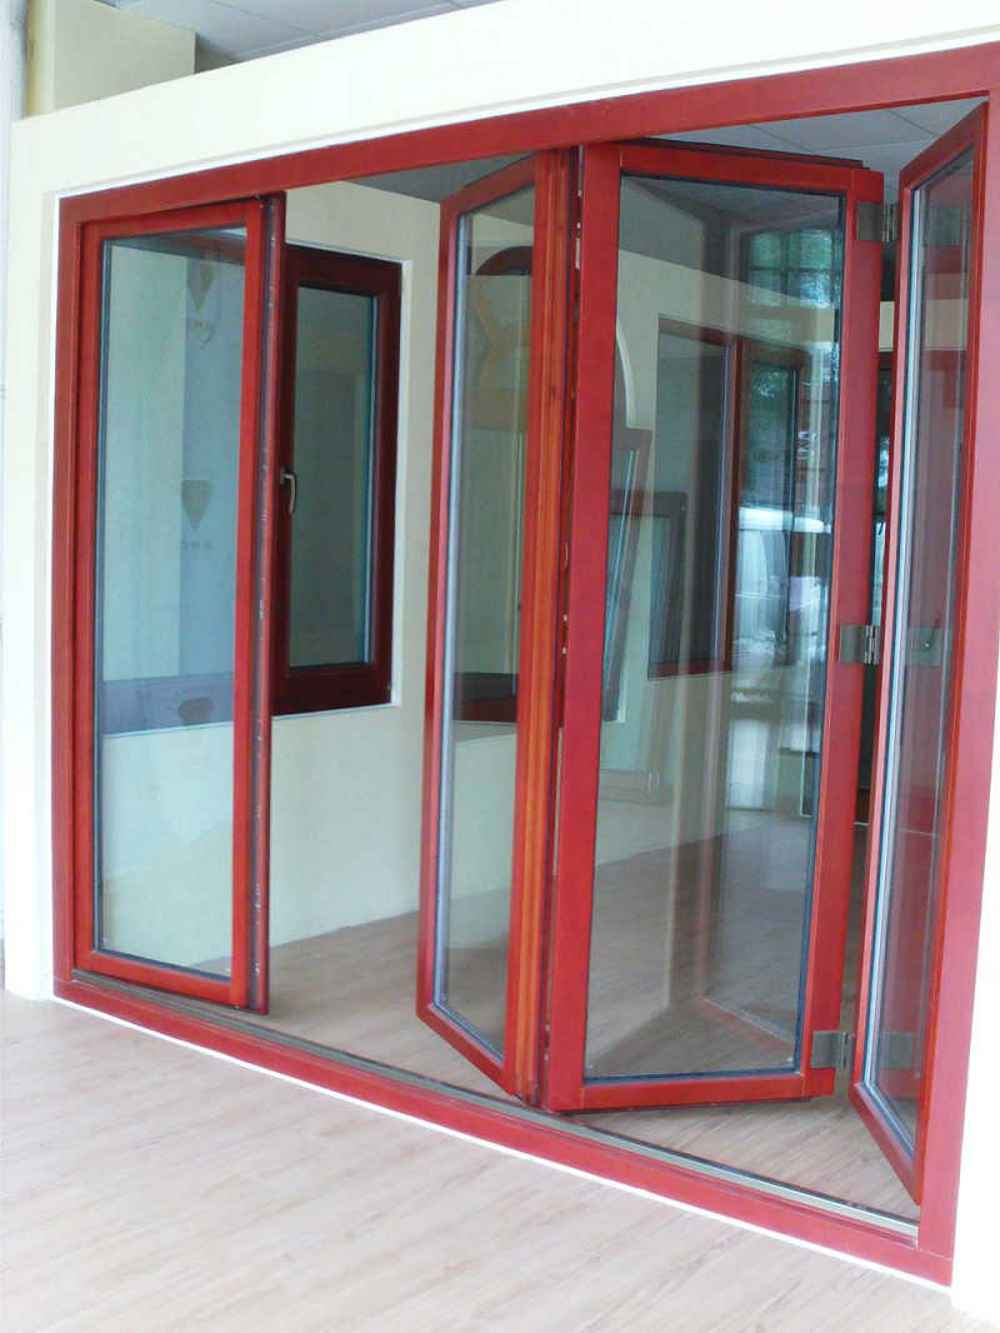 3 Panel Solid Wood Screen Room Divider Blinds Shades: Folding Doors Room Dividers